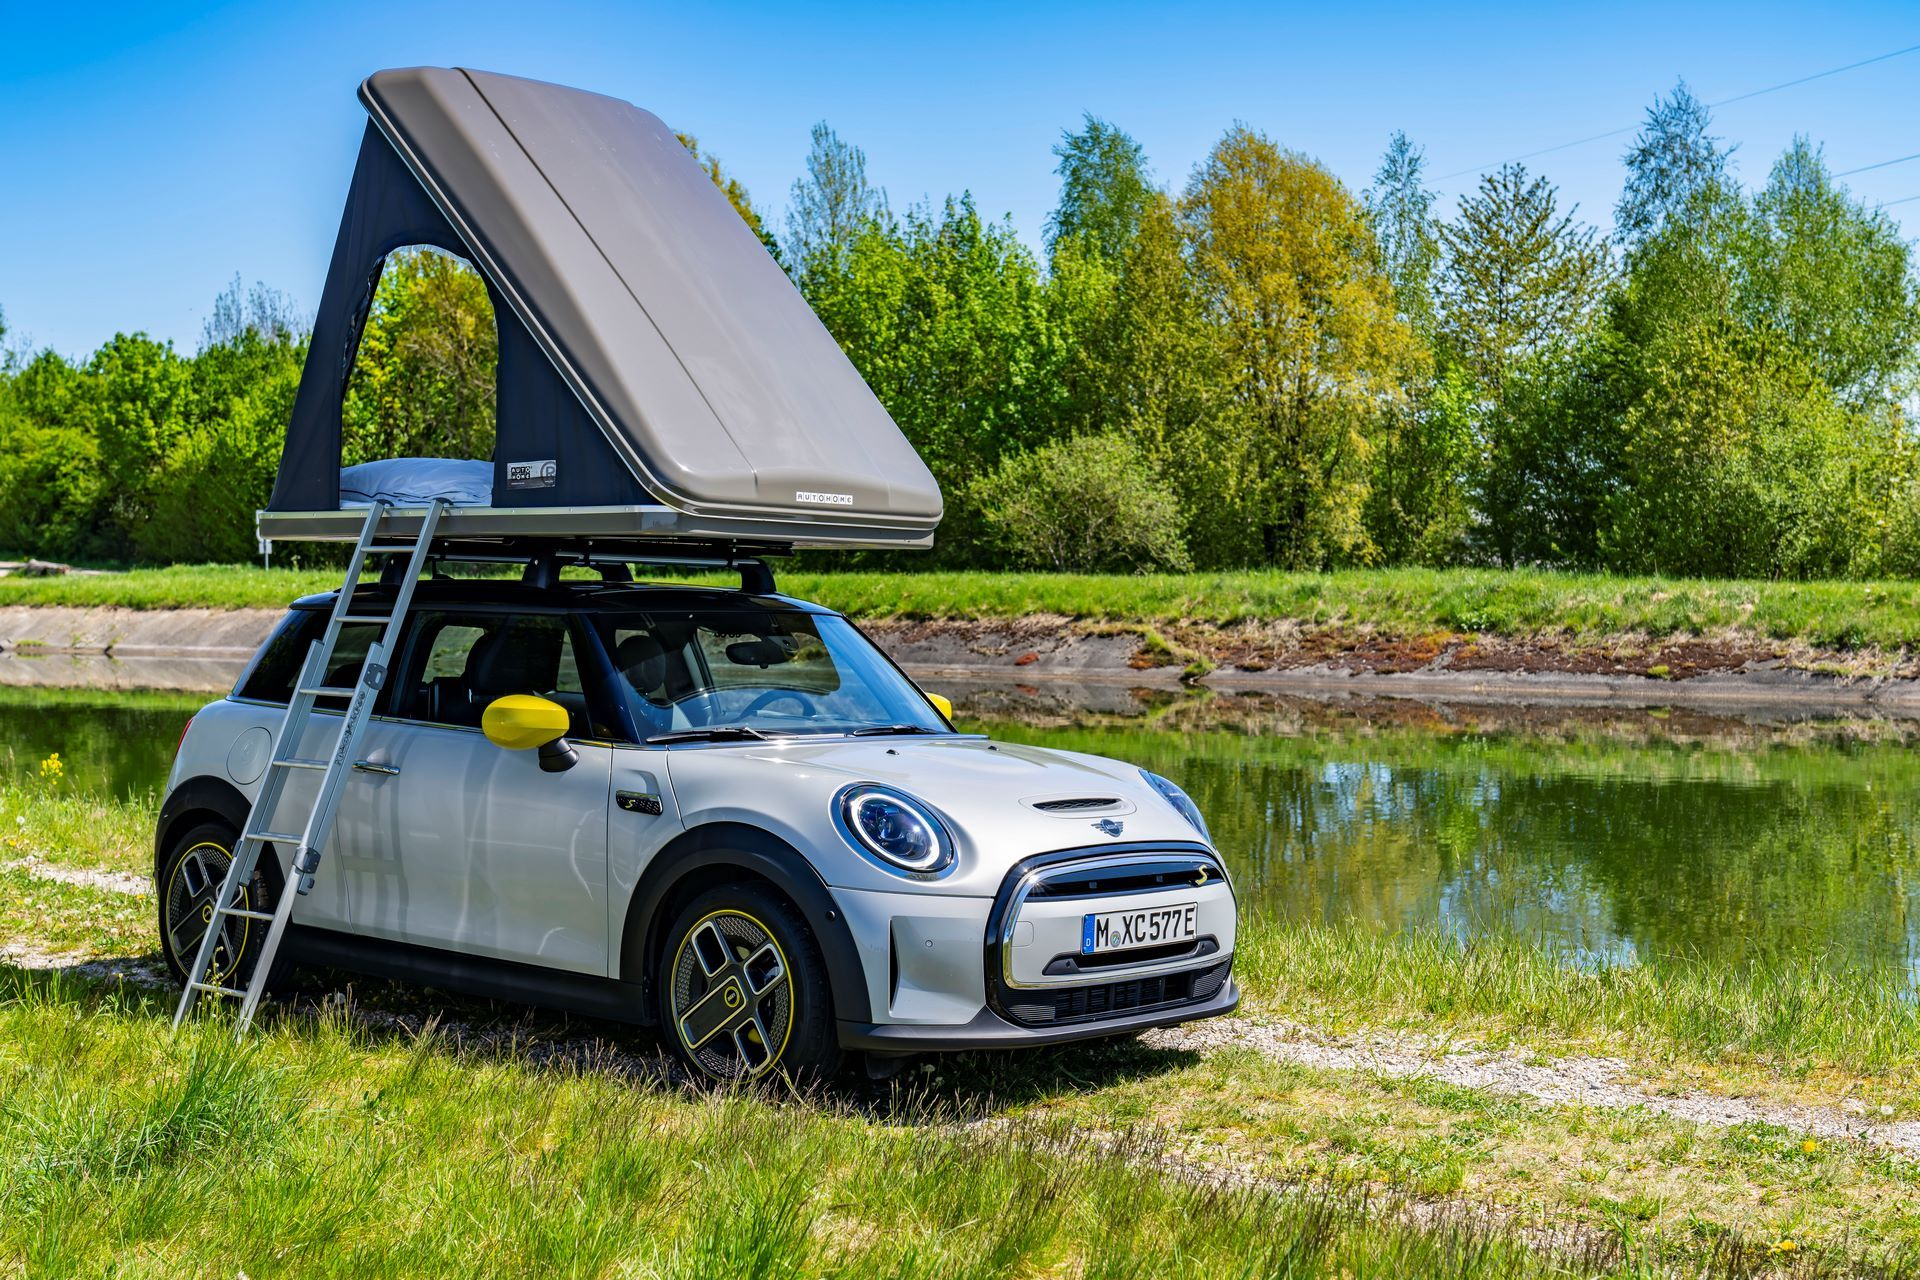 Mini-Cooper-Countryman-All4-Rooftop-Tents-11